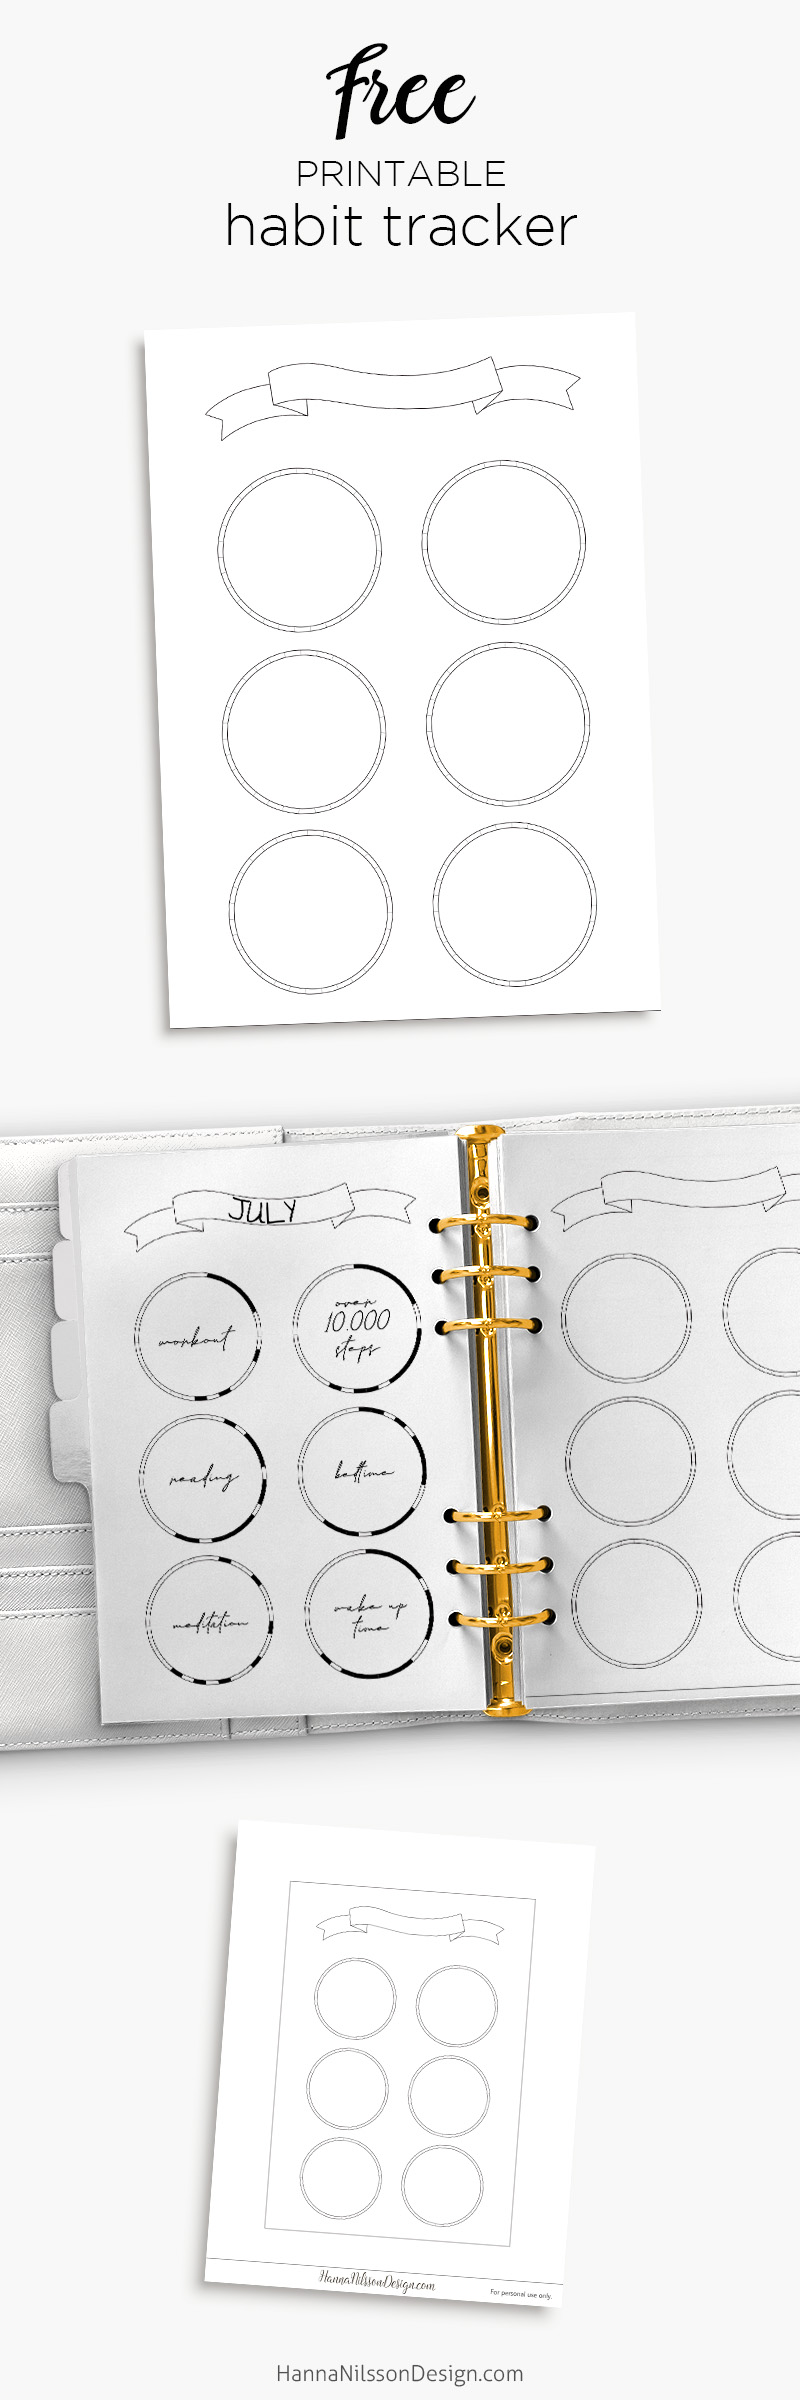 image relating to Free Printable Habit Tracker identify Cost-free printable pattern tracker with banner for your planner